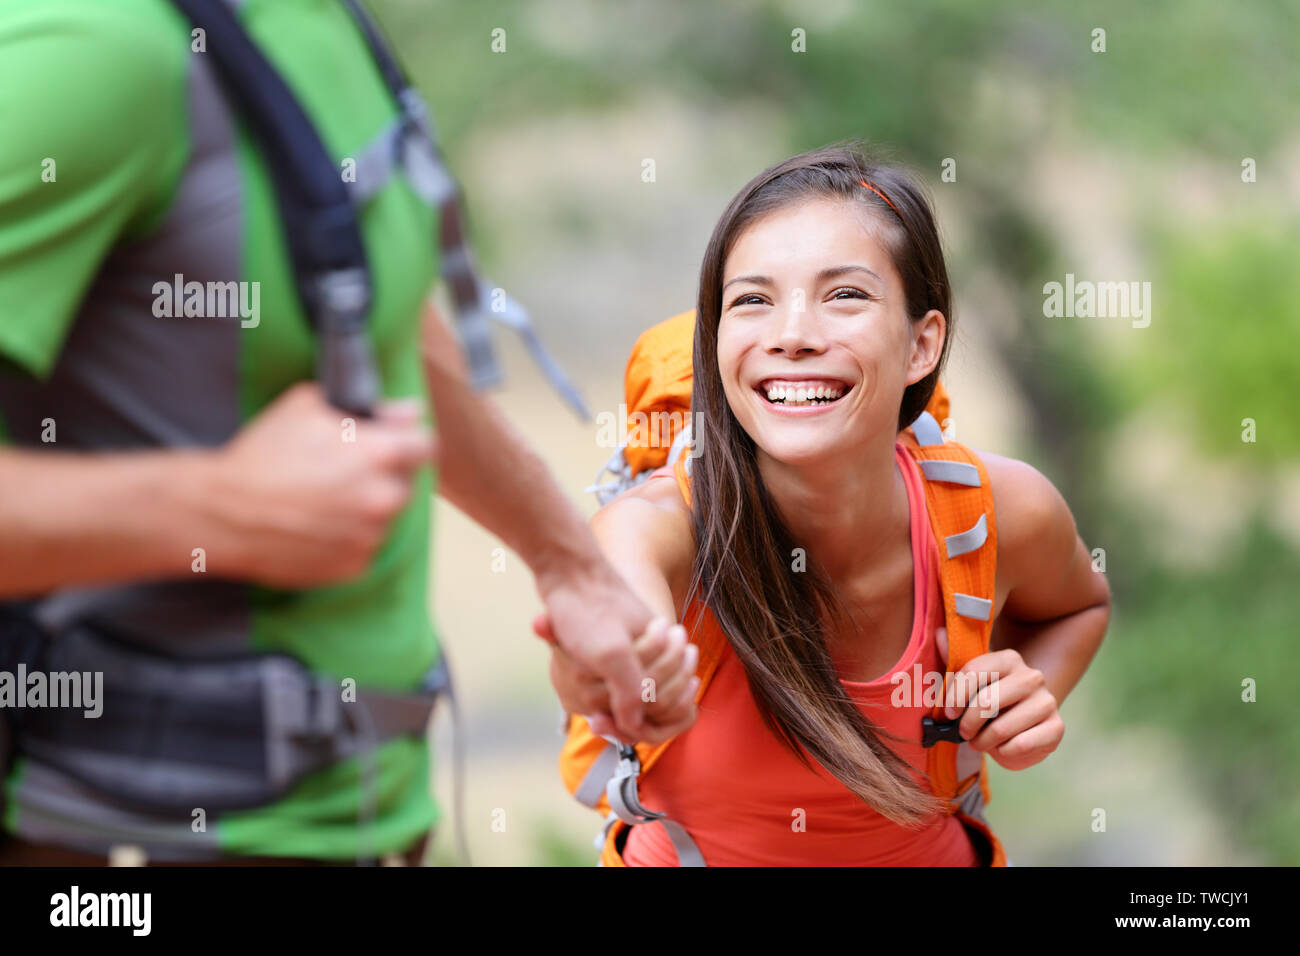 Helping hand - hiking woman getting help on hike smiling happy overcoming obstacle. Active lifestyle hiker couple traveling. Beautiful smiling mixed race Asian Caucasian female model. Stock Photo